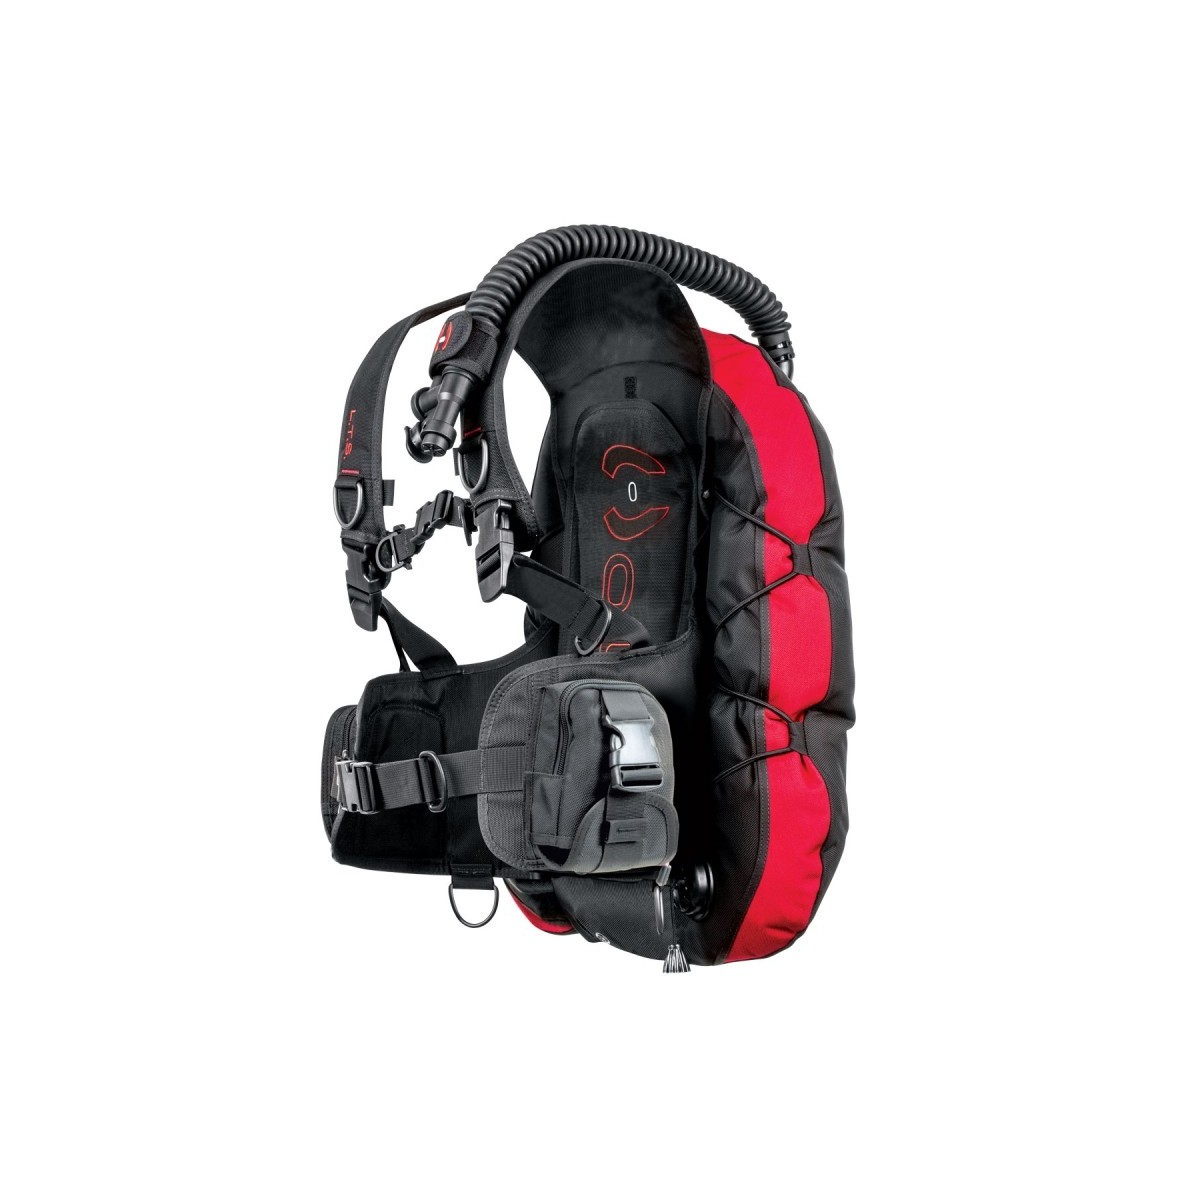 Hollis LTS Light Travel System Rear Inflation BCD